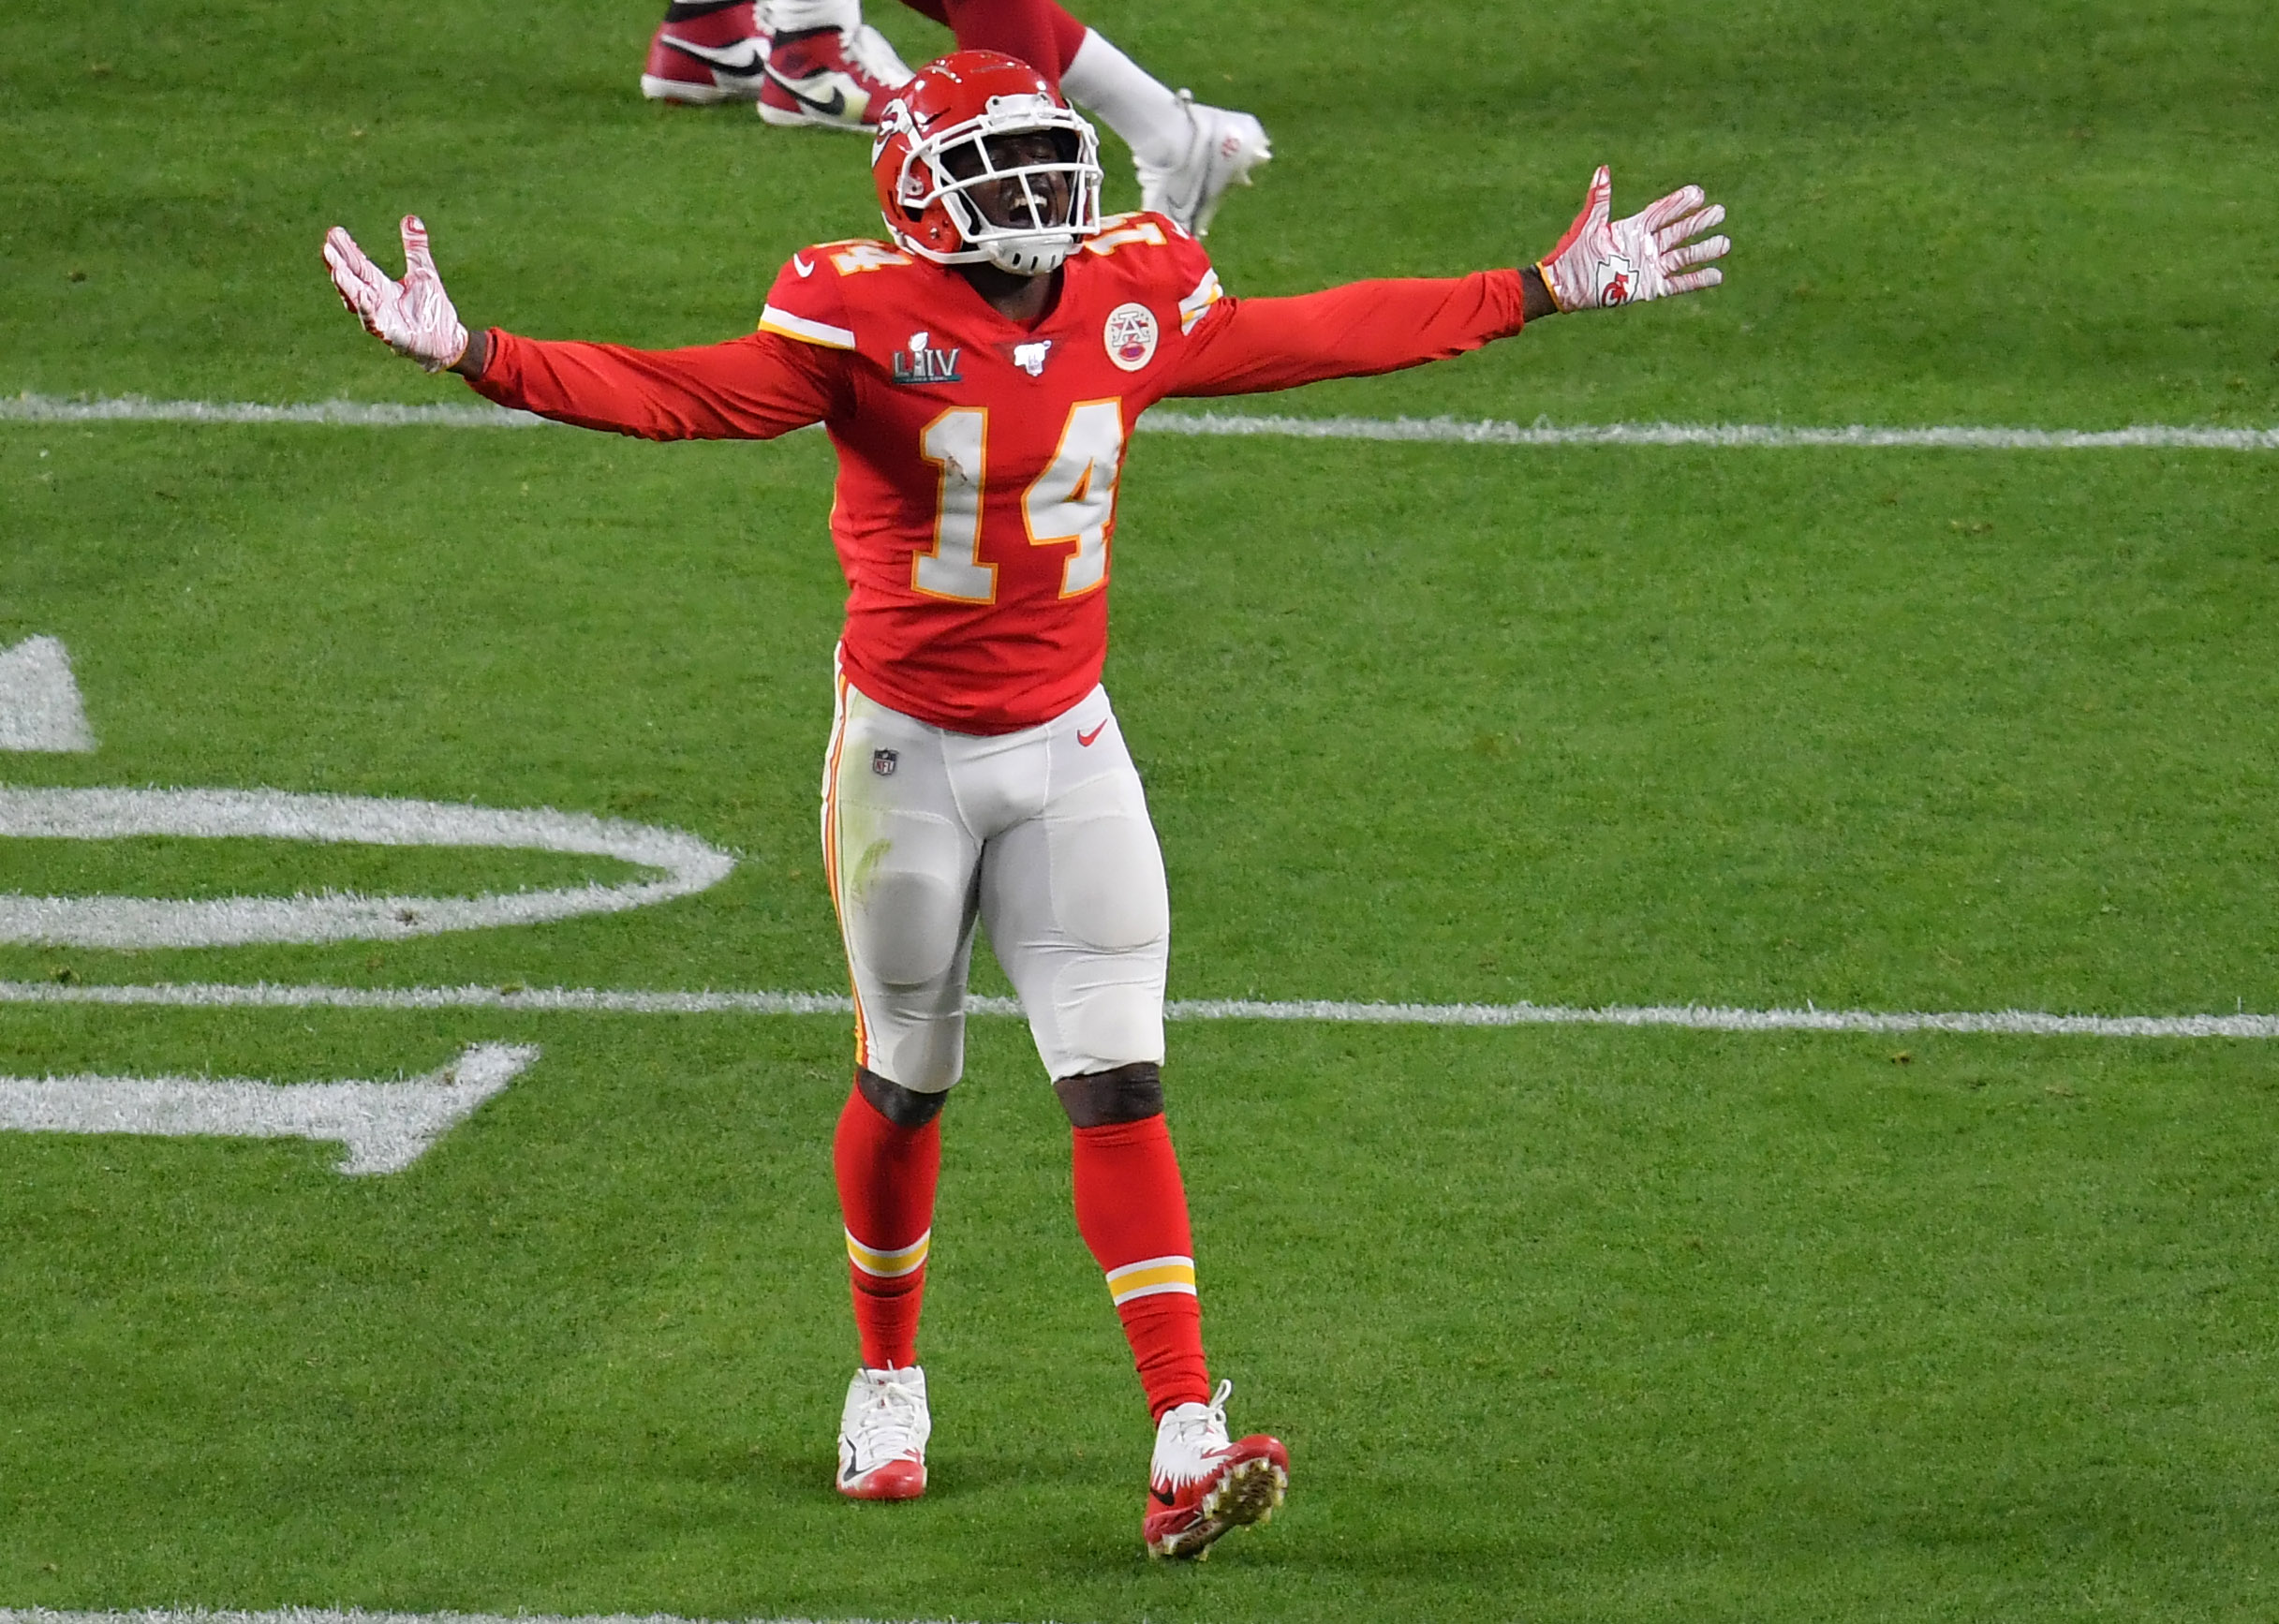 Kansas City Chiefs and Sammy Watkins agree to restructured contract for 2020 season